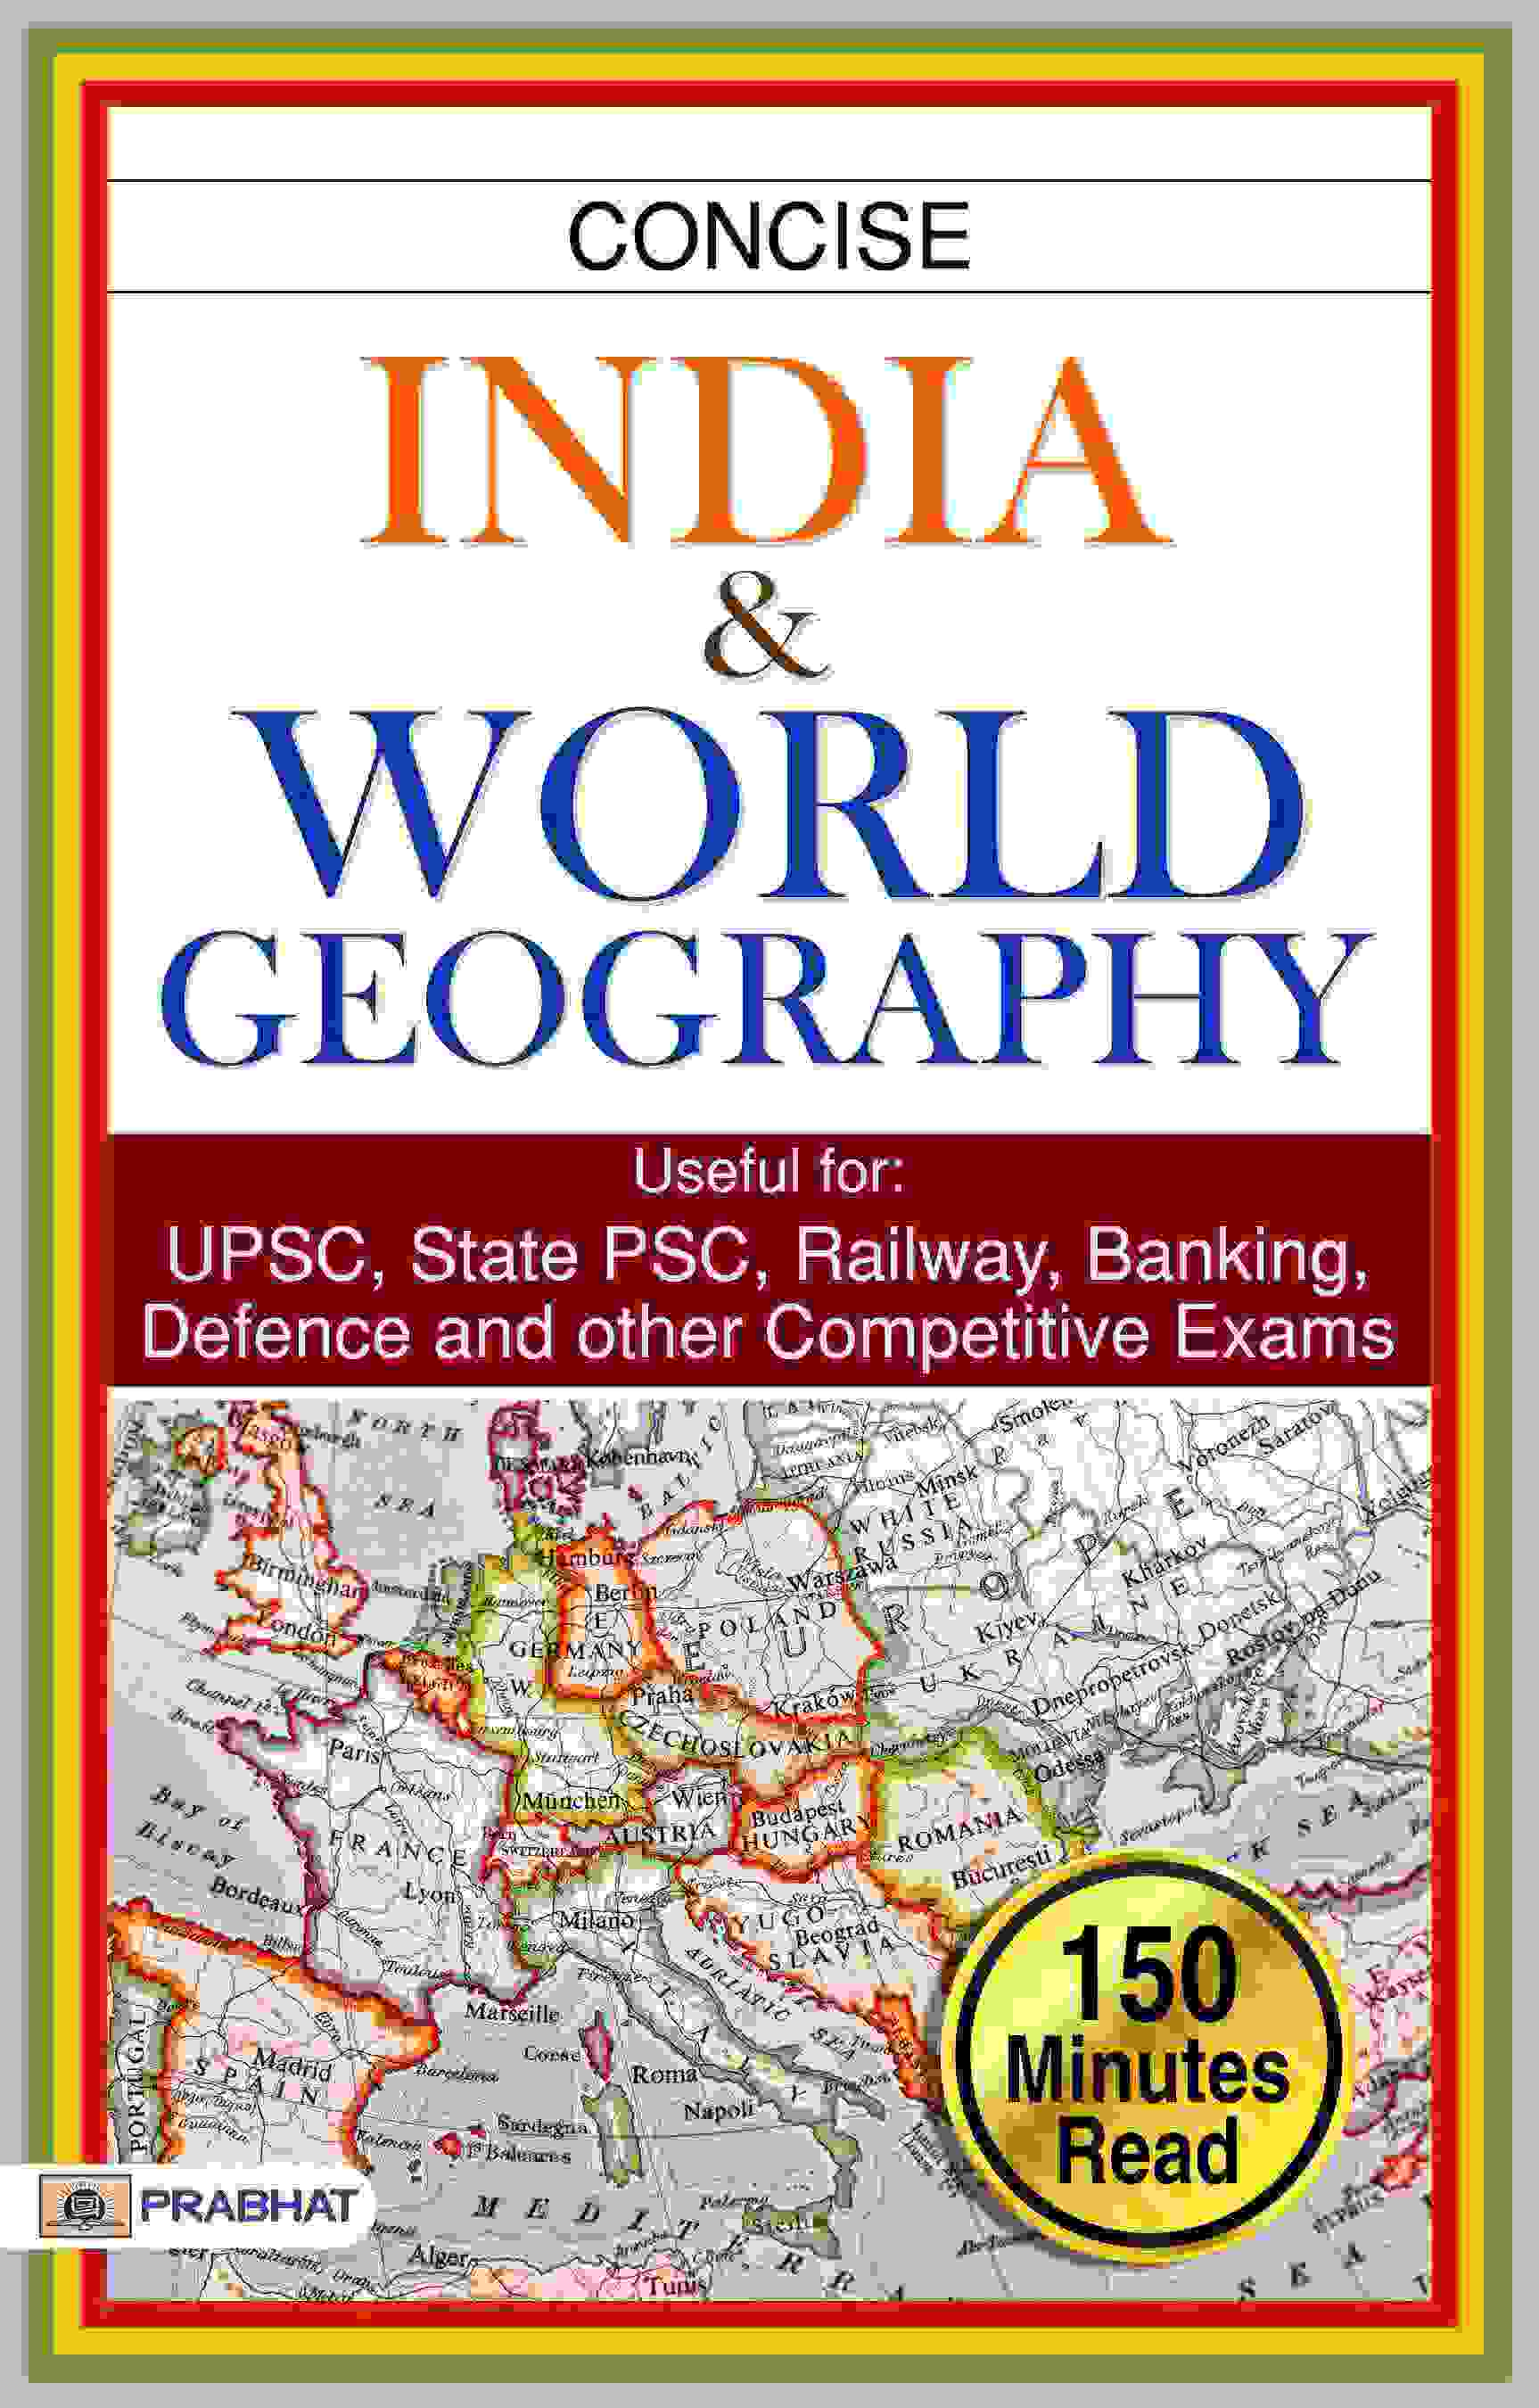 CONCISE INDIA & WORLD GEOGRAPHY Useful for: UPSC, State PSC, SSC, Rail...